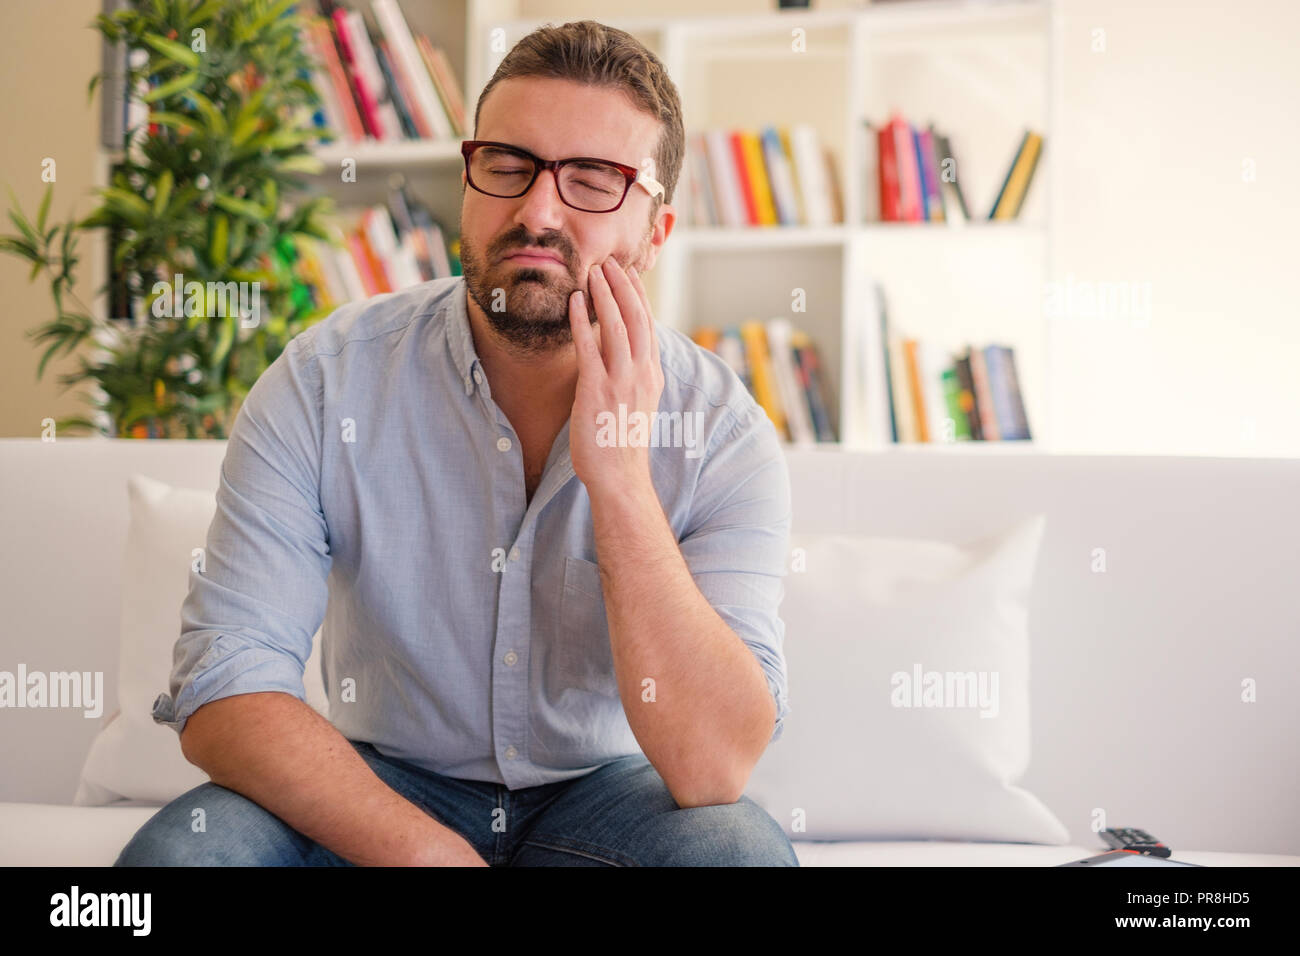 Man portrait feeling tooth ache at home - Stock Image